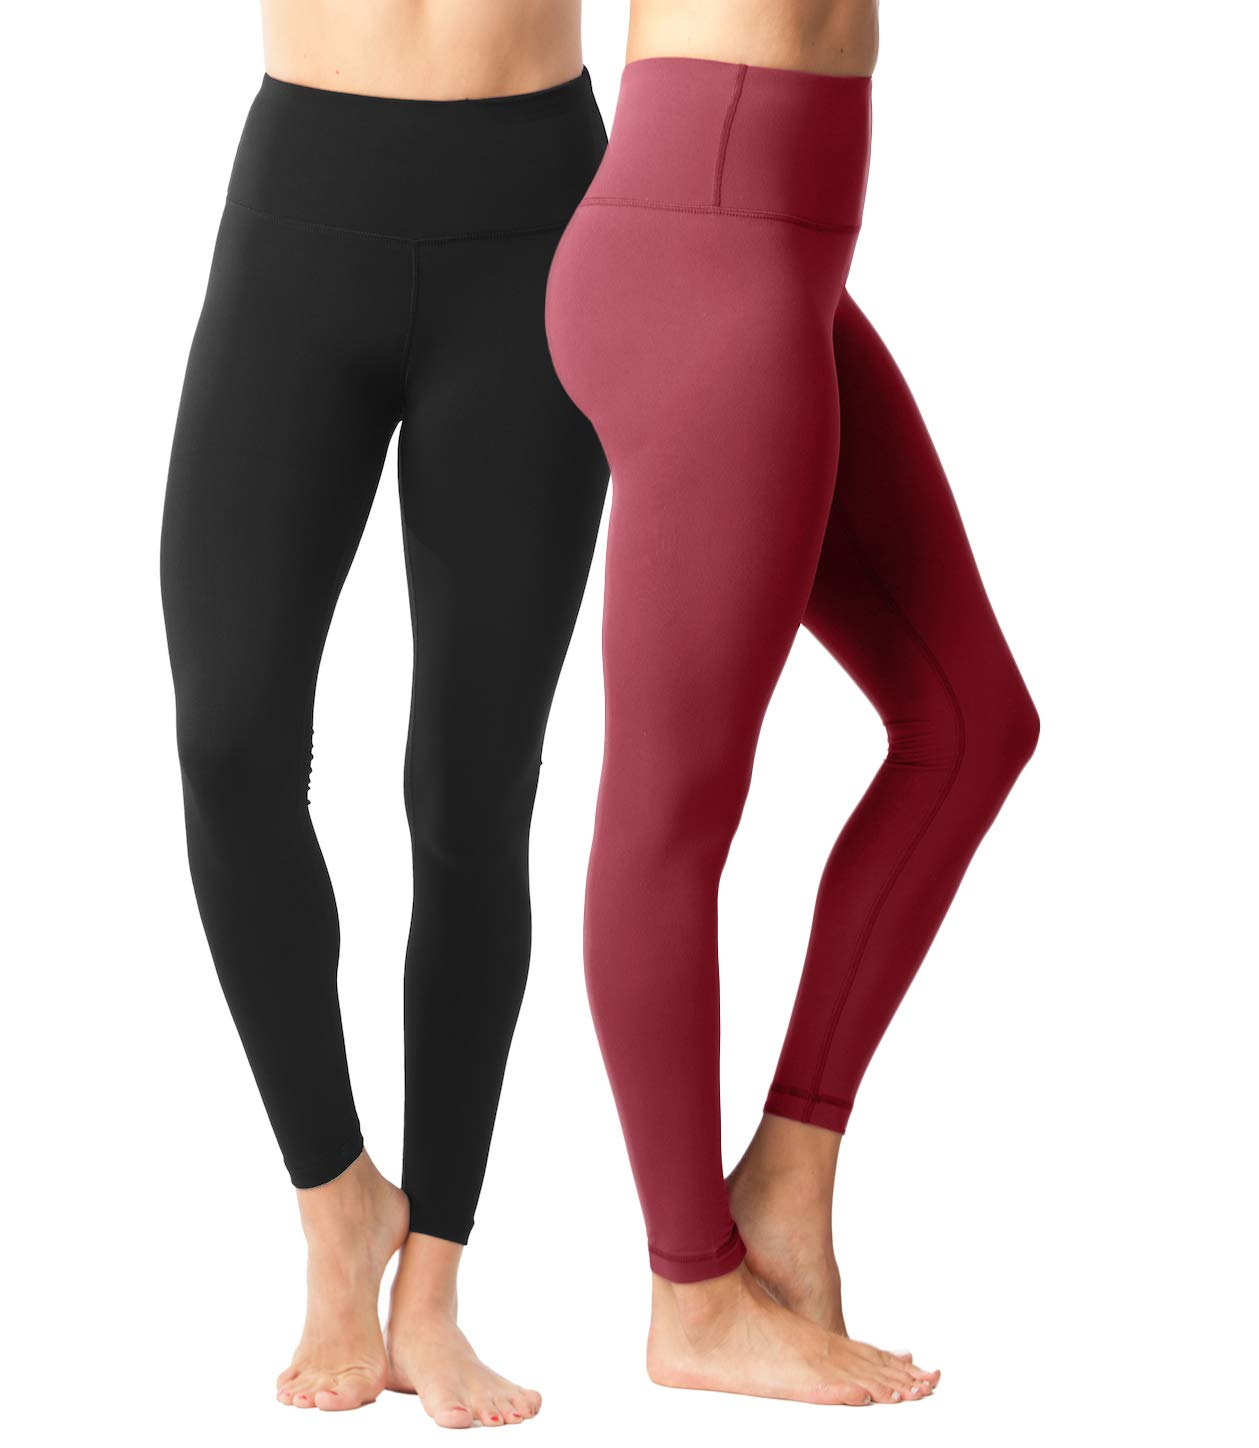 Yogalicious High Waist Ultra Soft Lightweight Leggings - High Rise Yoga Pants - 2 Pack - Black and Burnt Garnet - XS